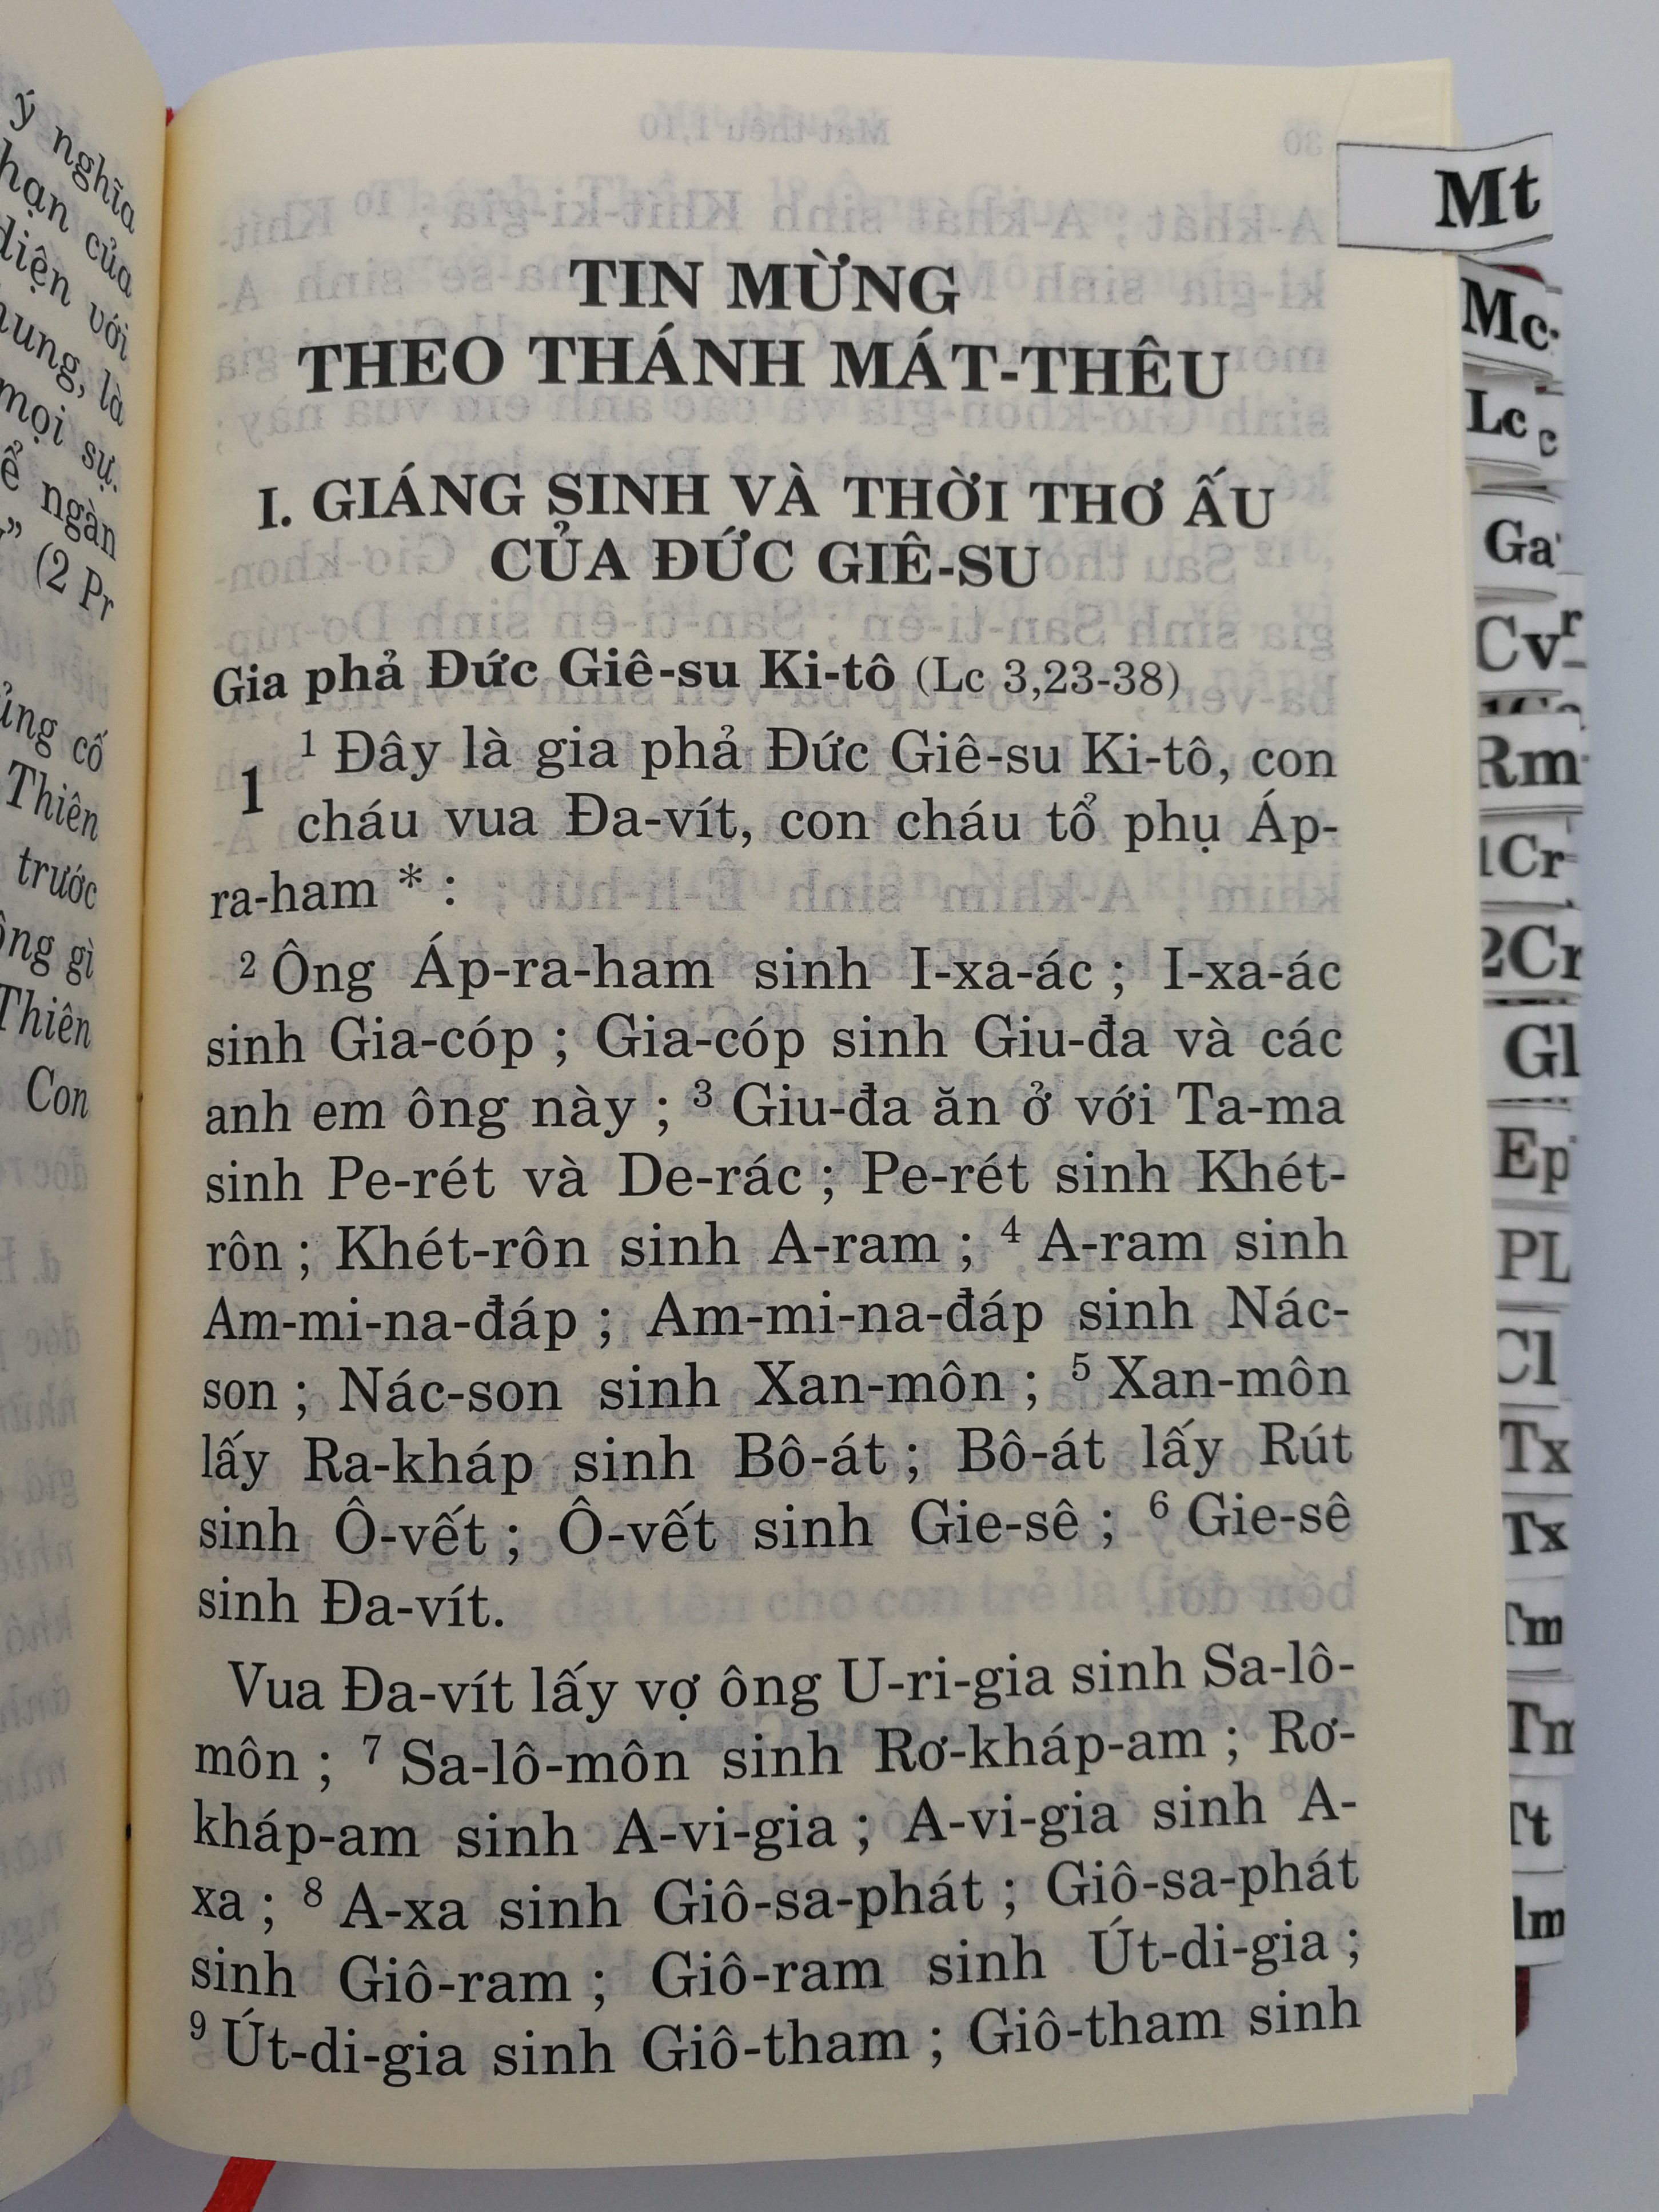 kinh-th-nh-t-n-c-vietnamese-new-testament-with-book-index8.jpg